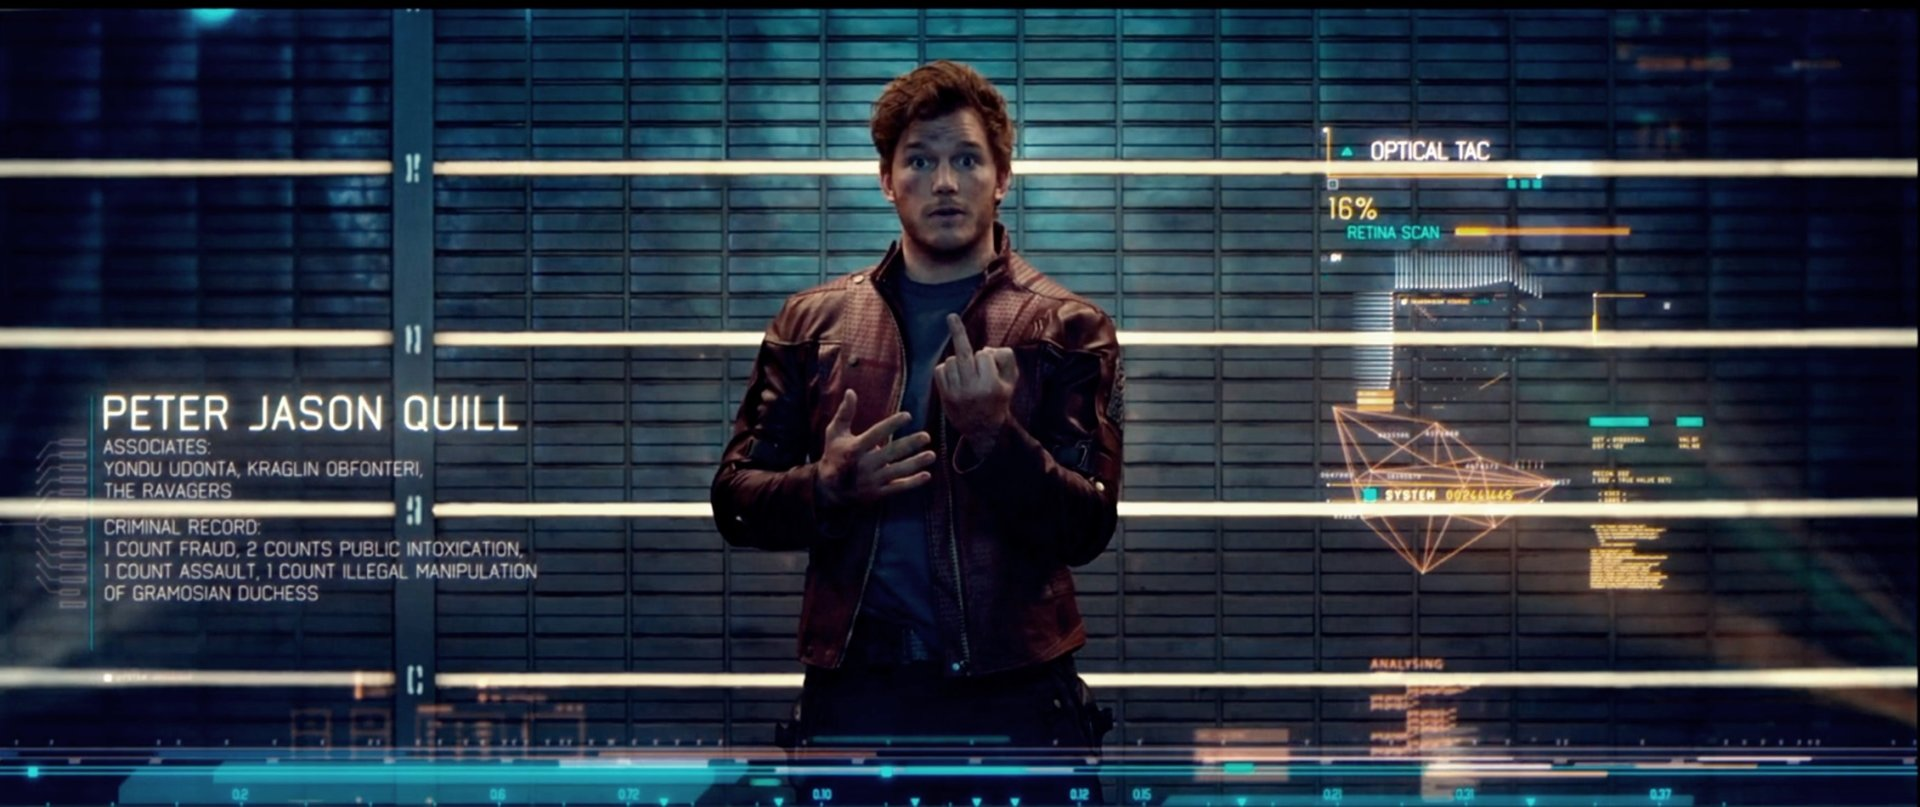 Movie - Guardians of the Galaxy  Star Lord Peter Quill Wallpaper